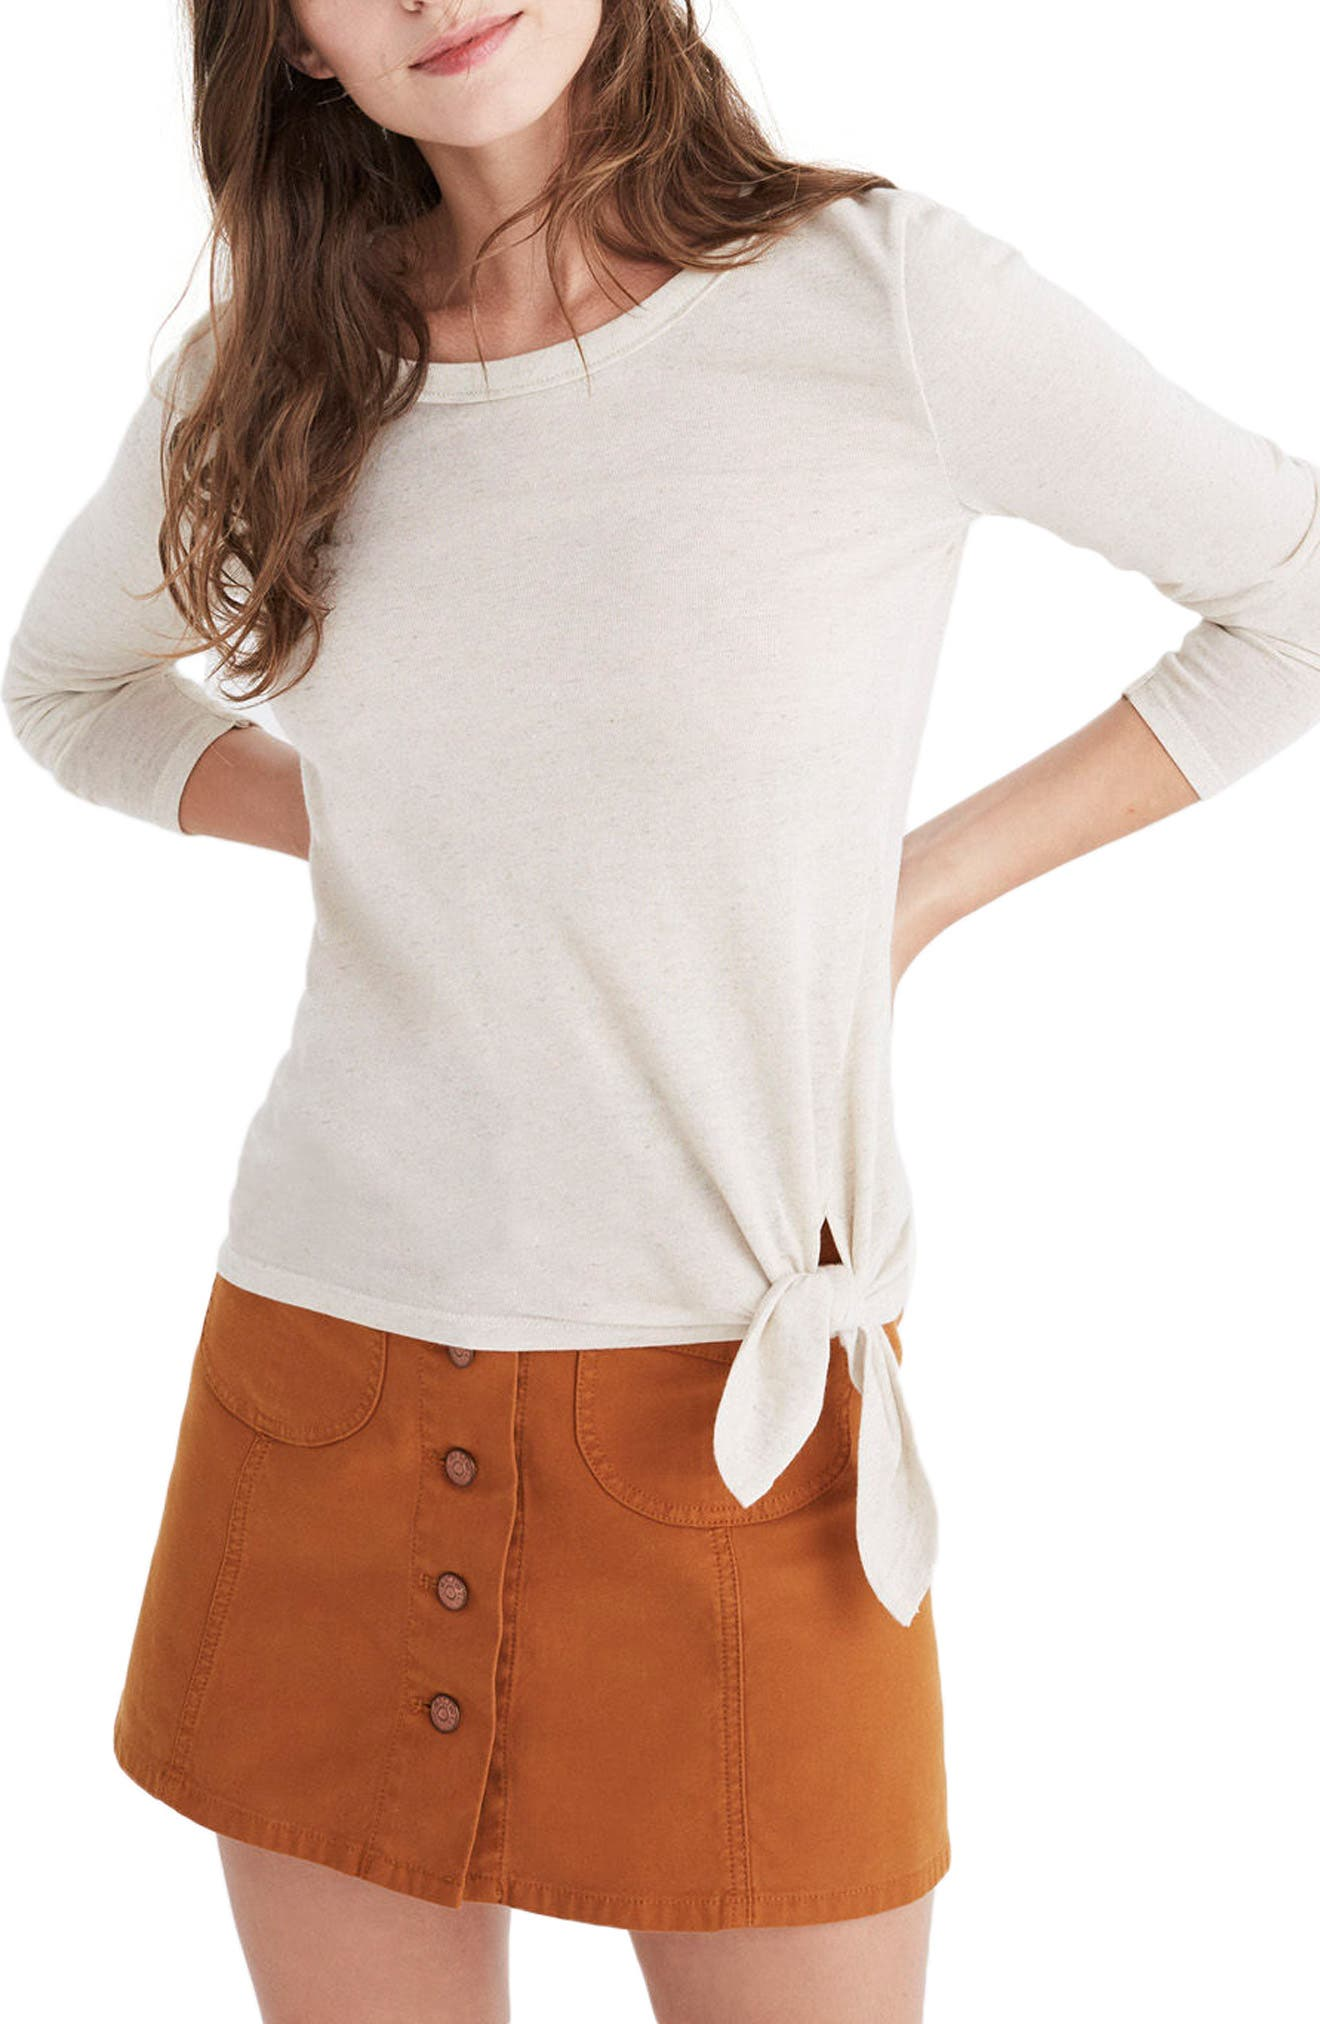 Soundcheck Side Tie Tee,                         Main,                         color, Natural